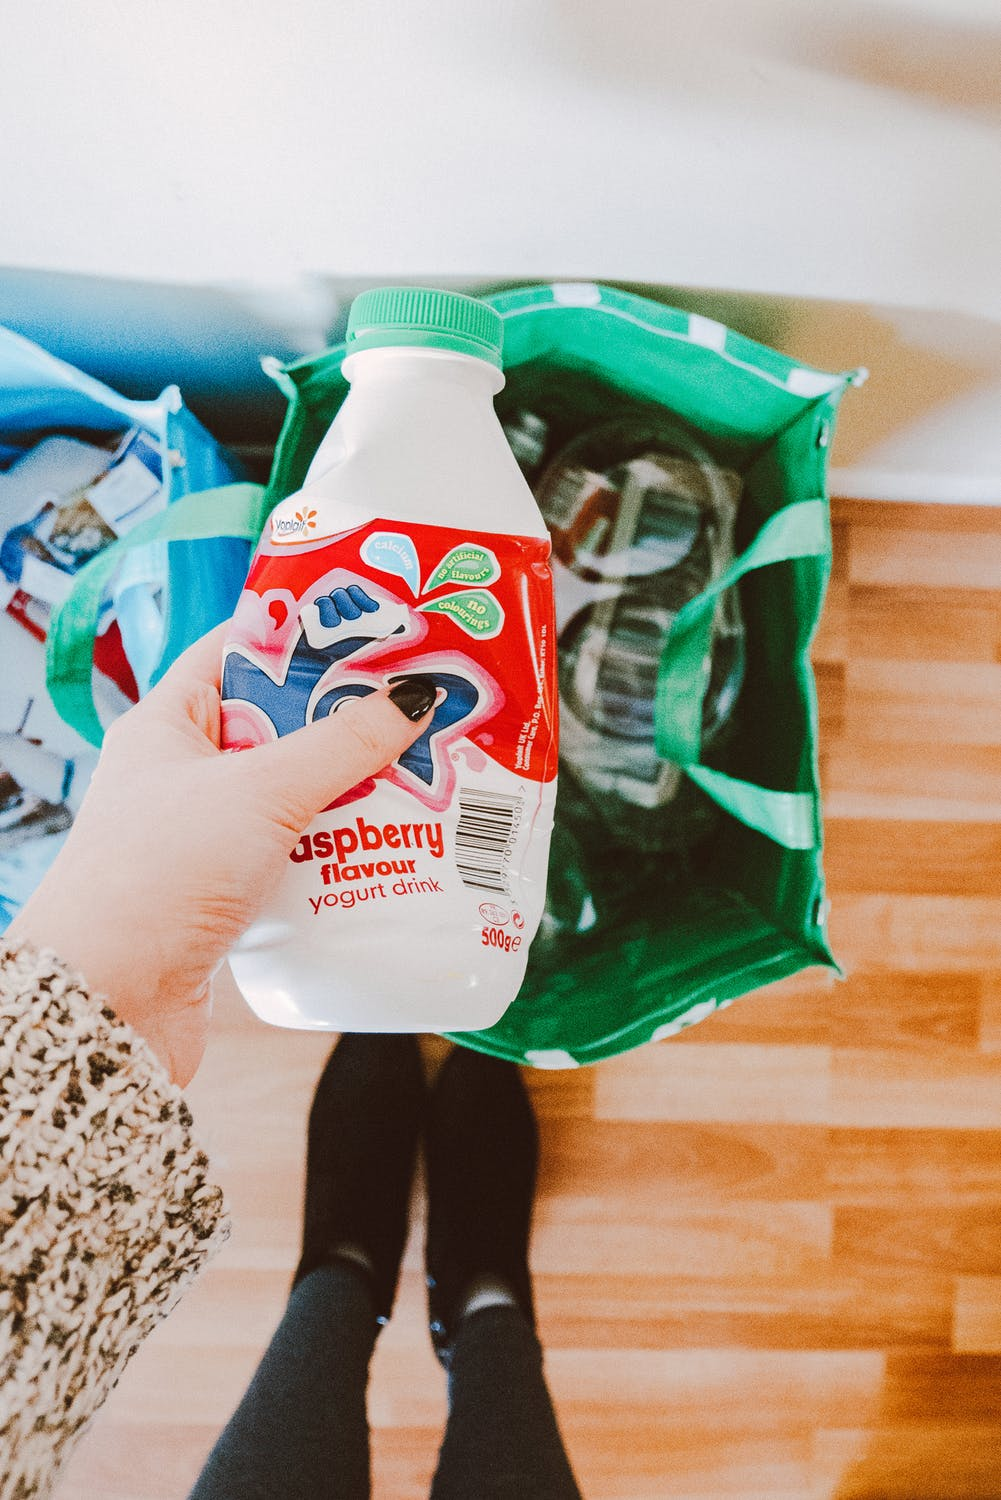 What Happens to the Household Waste You Throw Away?